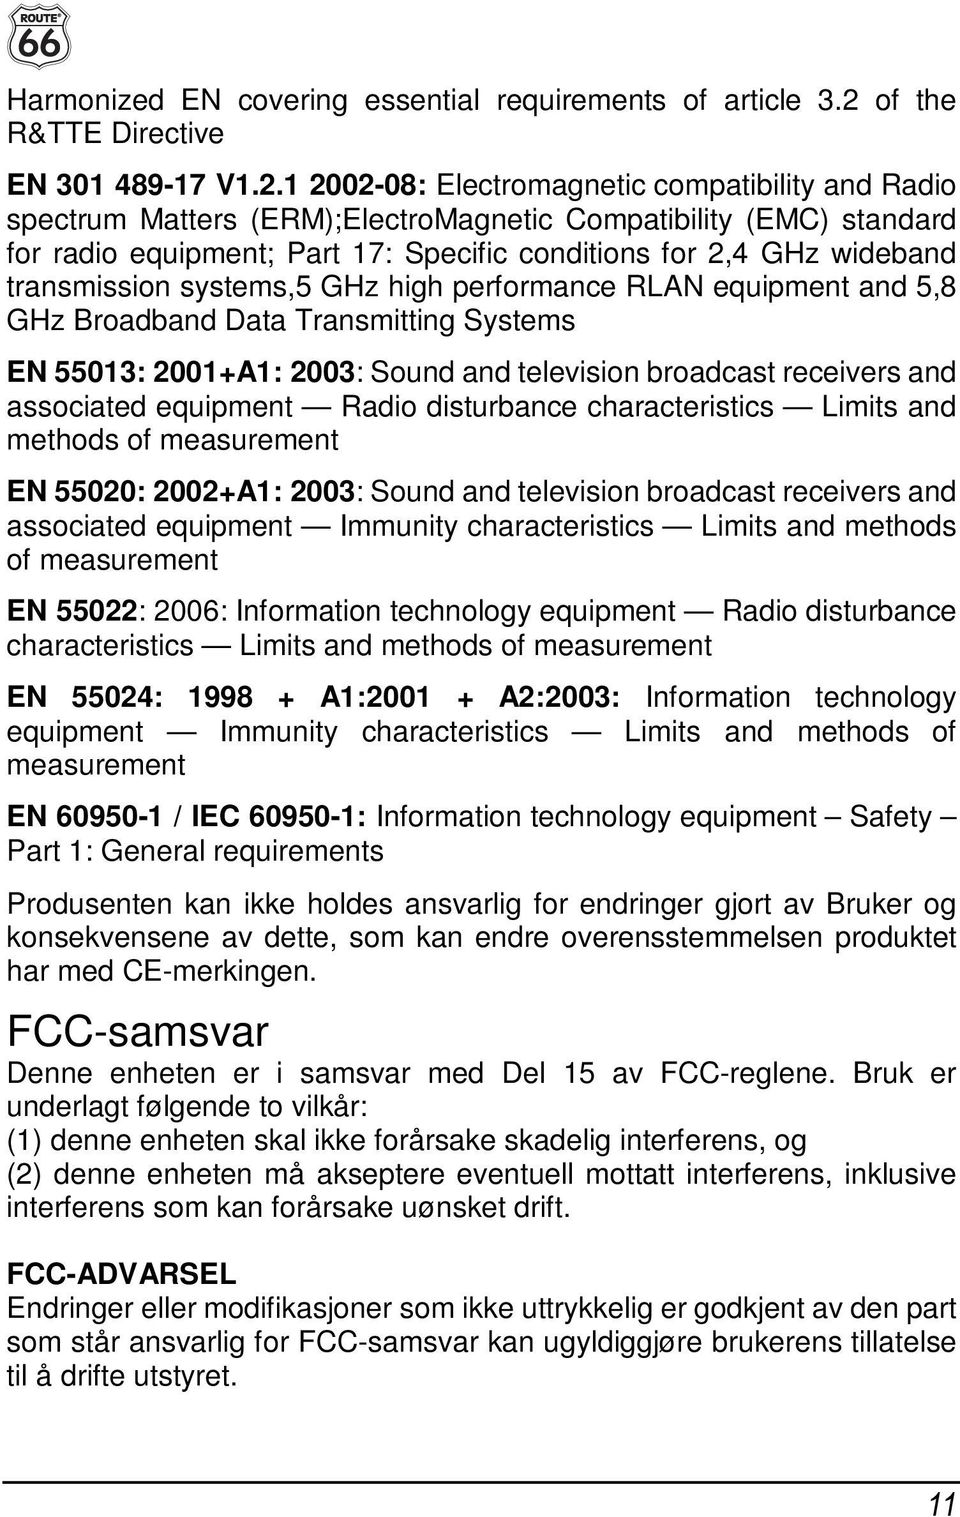 1 2002-08: Electromagnetic compatibility and Radio spectrum Matters (ERM);ElectroMagnetic Compatibility (EMC) standard for radio equipment; Part 17: Specific conditions for 2,4 GHz wideband